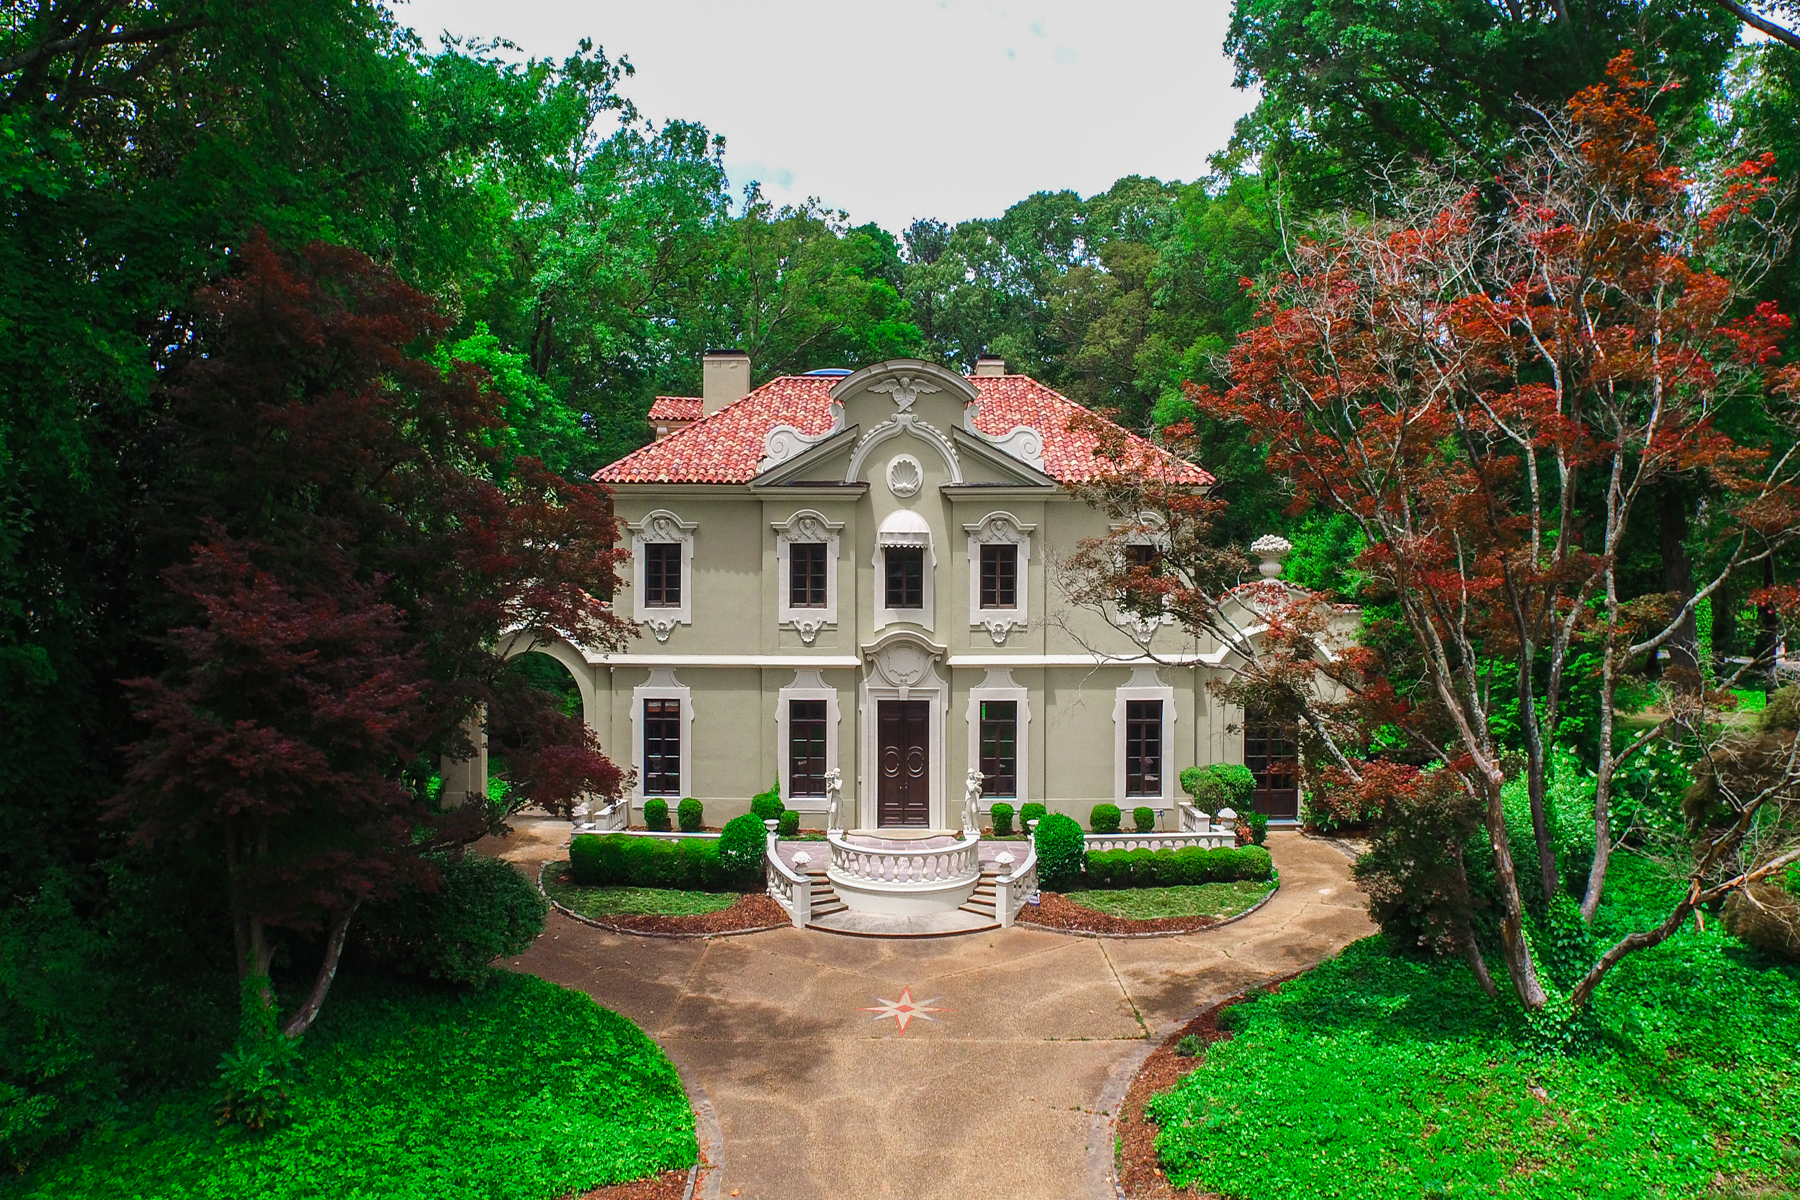 Maison unifamiliale pour l Vente à Classic Elegance In Atlanta's Finest Neighborhood 541 W Paces Ferry Road NW Buckhead, Atlanta, Georgia, 30305 États-Unis